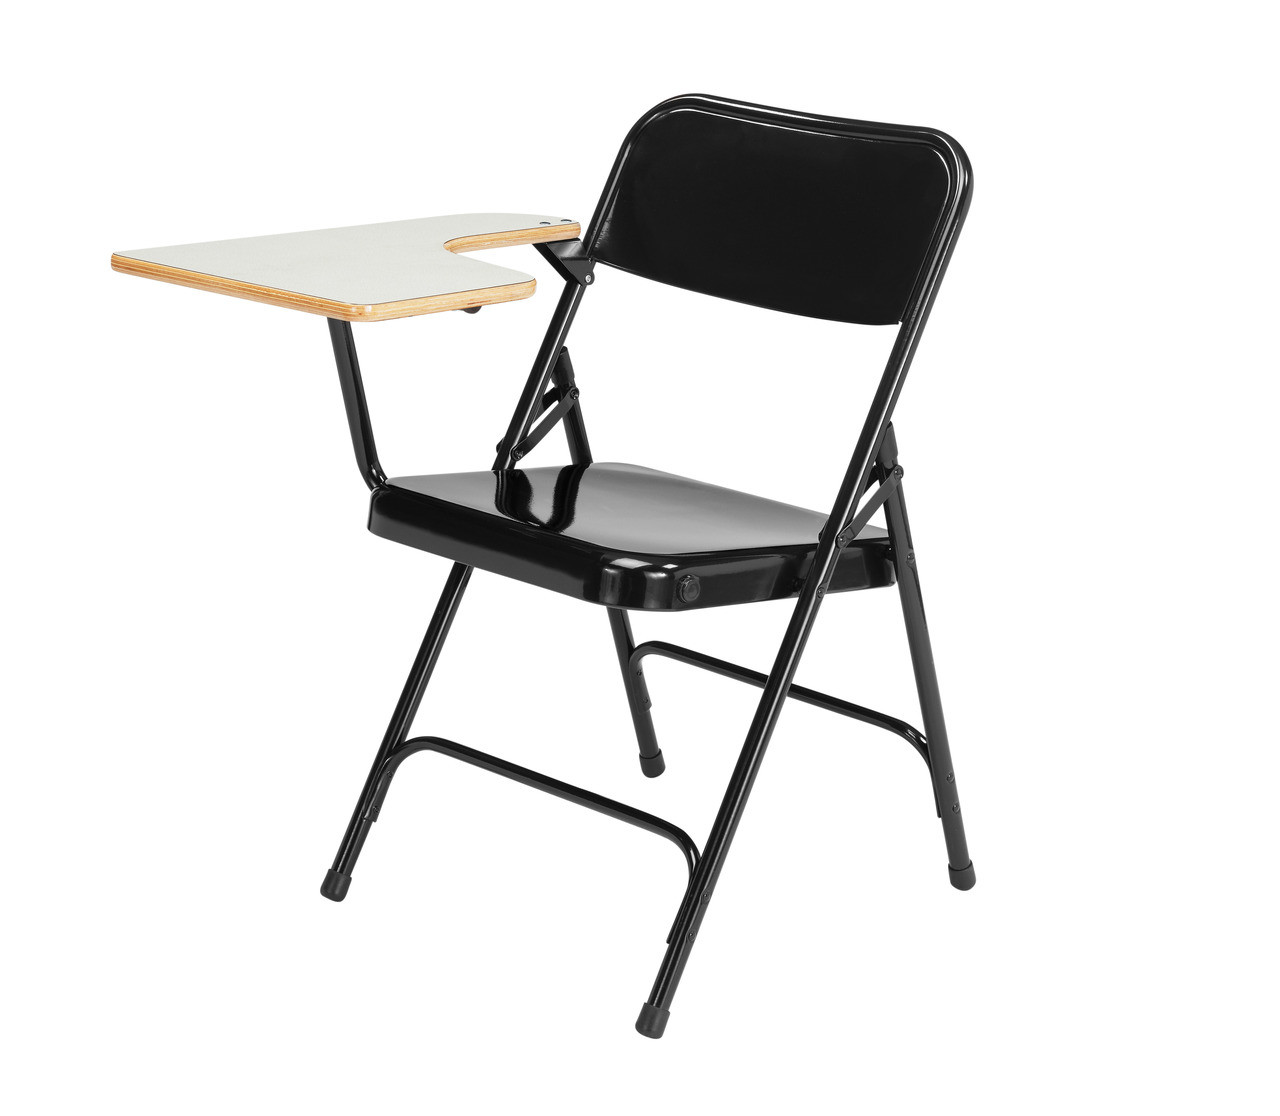 Outstanding Tablet Arm Premium Metal Folding Chair By National Public Seating 5200 Series Pabps2019 Chair Design Images Pabps2019Com